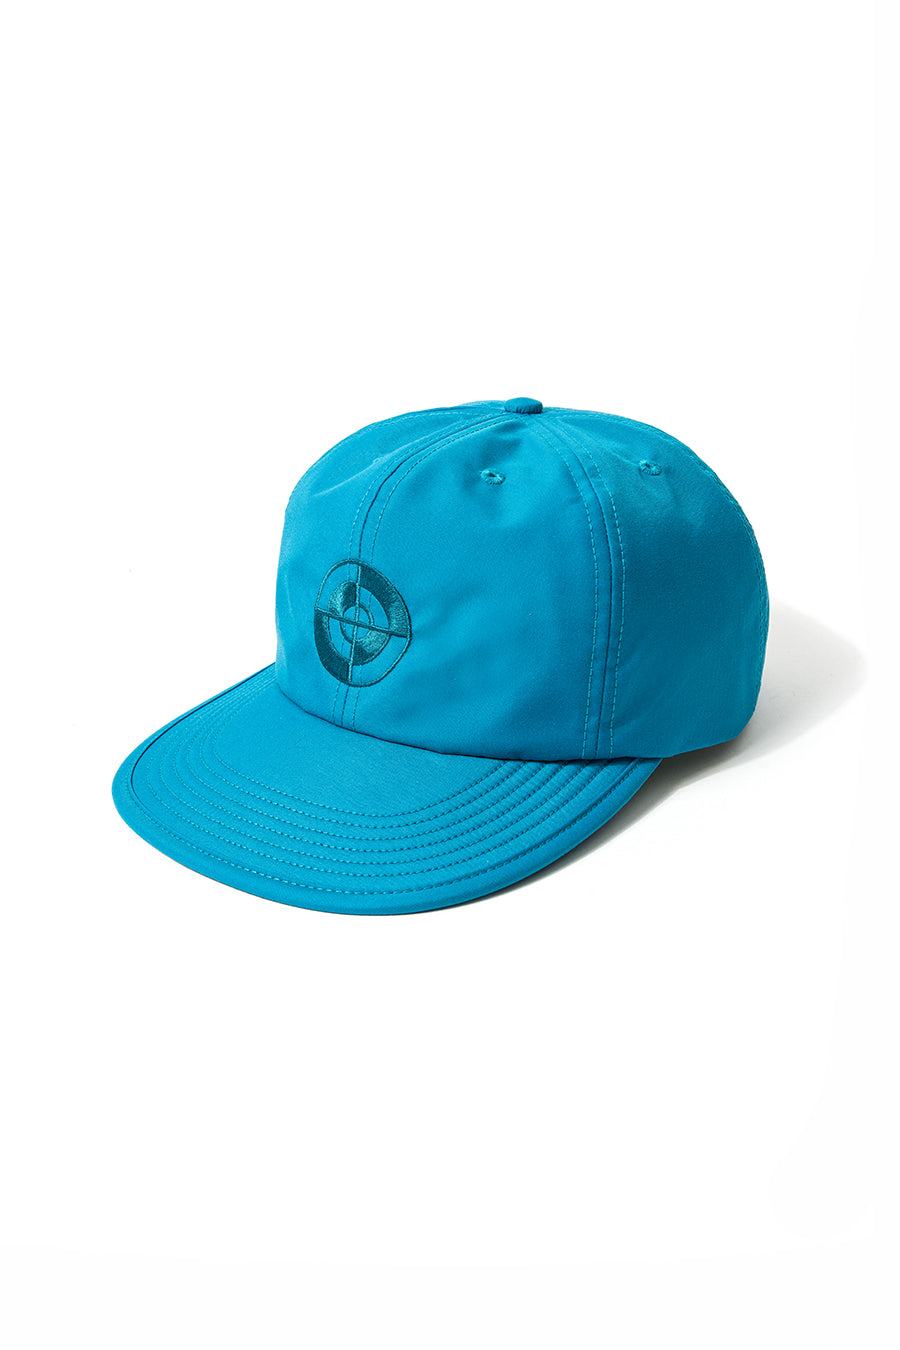 Powers Supply - Teal Target Tech Nylon Hat